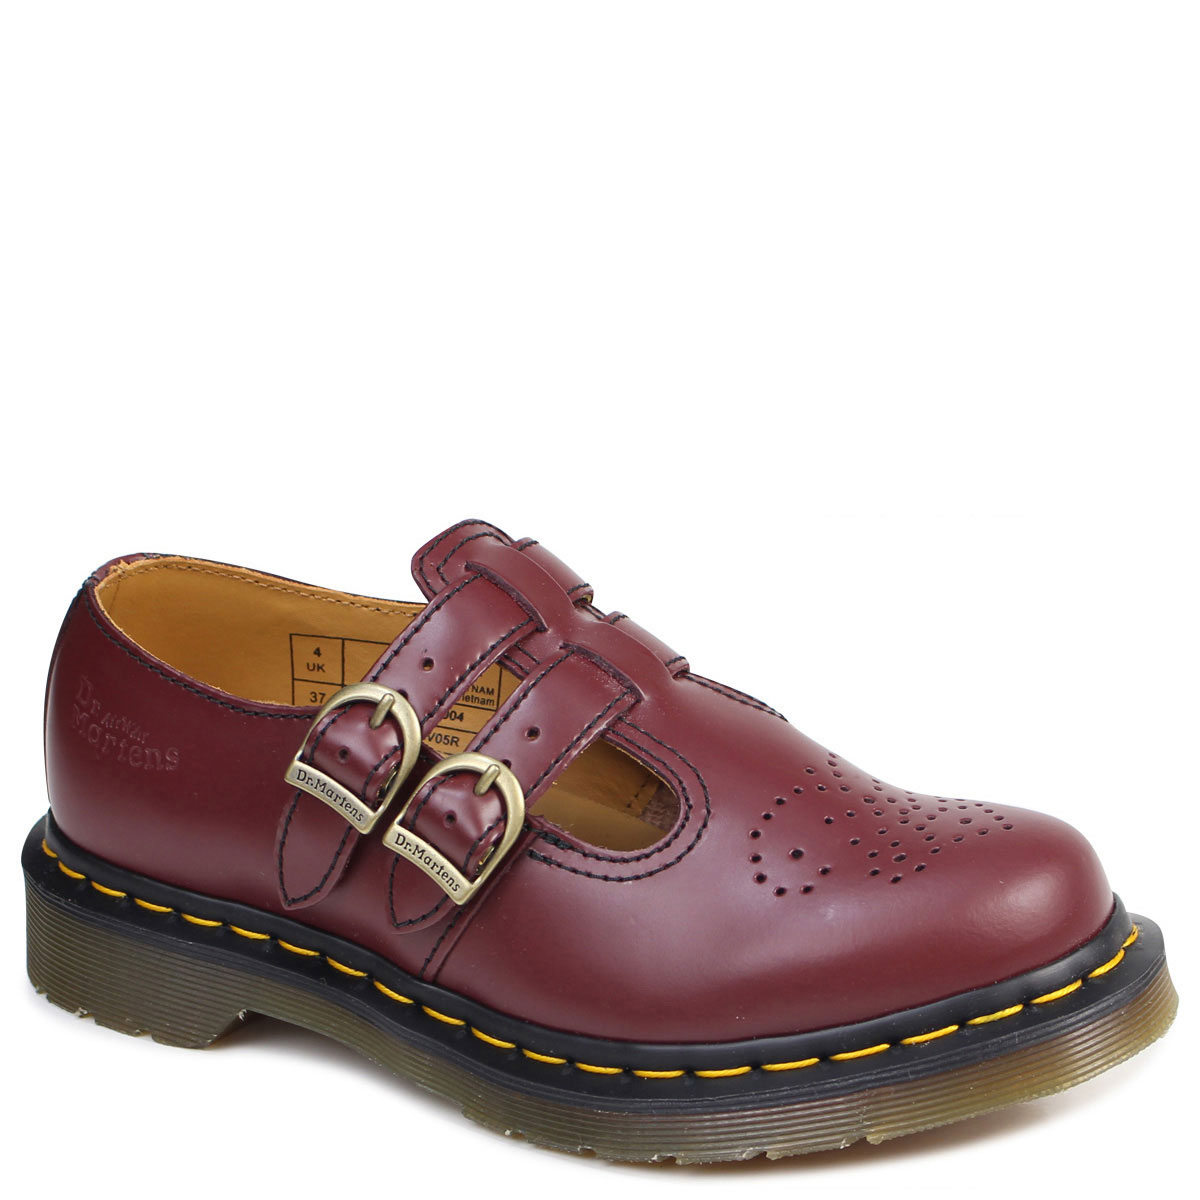 1c05b443055d Dr.Martens Mary Jane Lady s doctor Martin shoes CORE 8065 MARY JANE  R20159600 burgundy  8 2 Shinnyu load   178